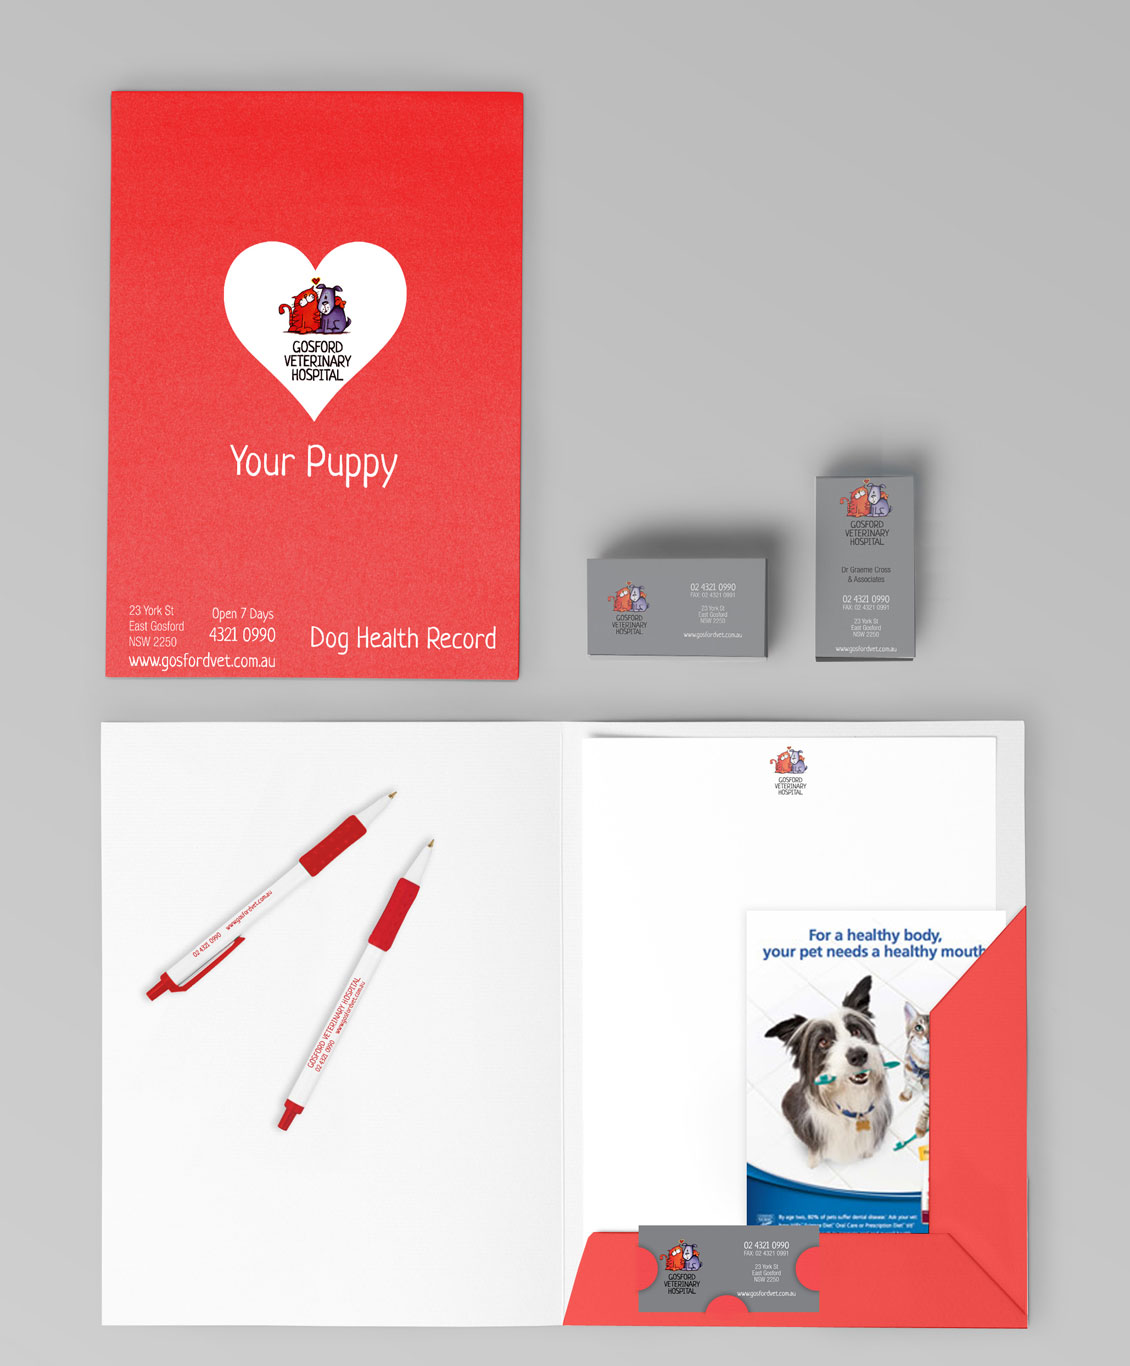 gosford-vet-welcome-pack